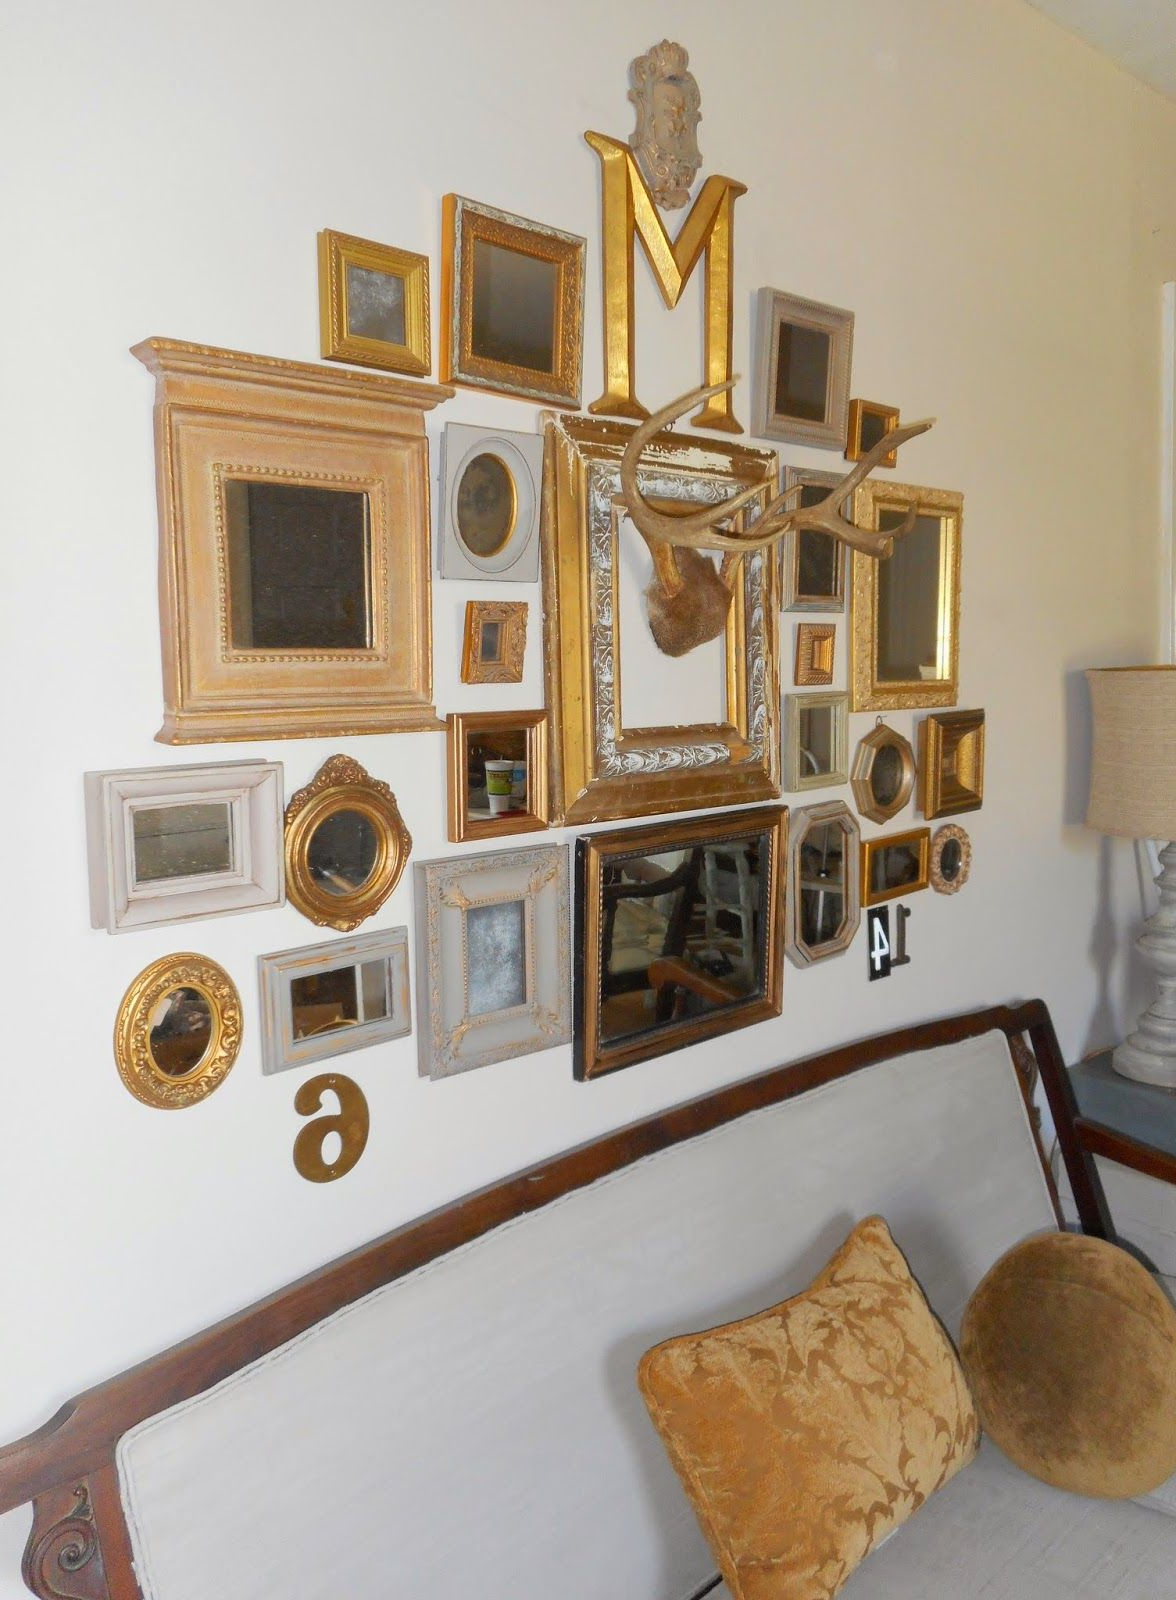 Revisionary Life – Gallery Wall Using Gilded Mirrors With Industrial Intended For Popular Gallery Wall Mirrors (Gallery 18 of 20)